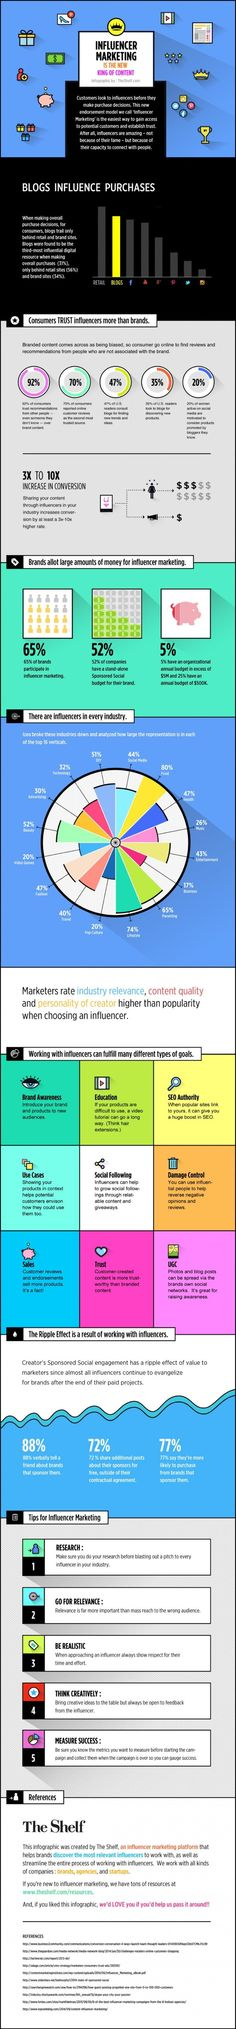 TheShelf-Influencer-Marketing-Infographic-2015